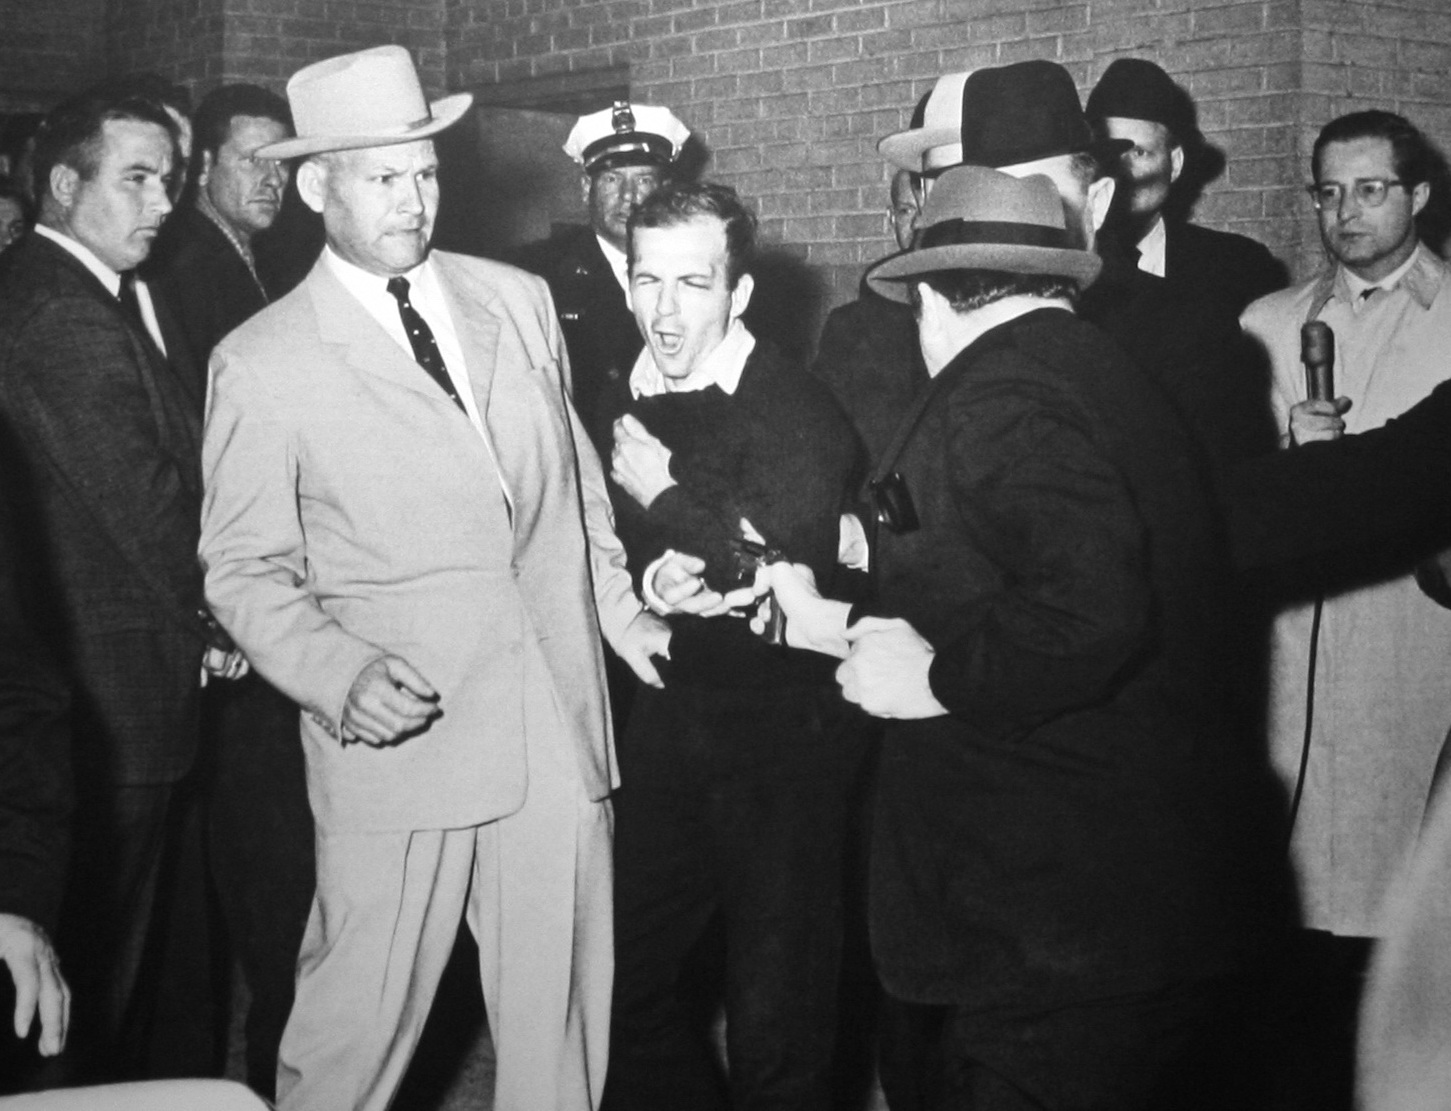 Ruby shooting Oswald, who is being escorted by Dallas police. Detective Jim Leavelle is wearing the tan suit.